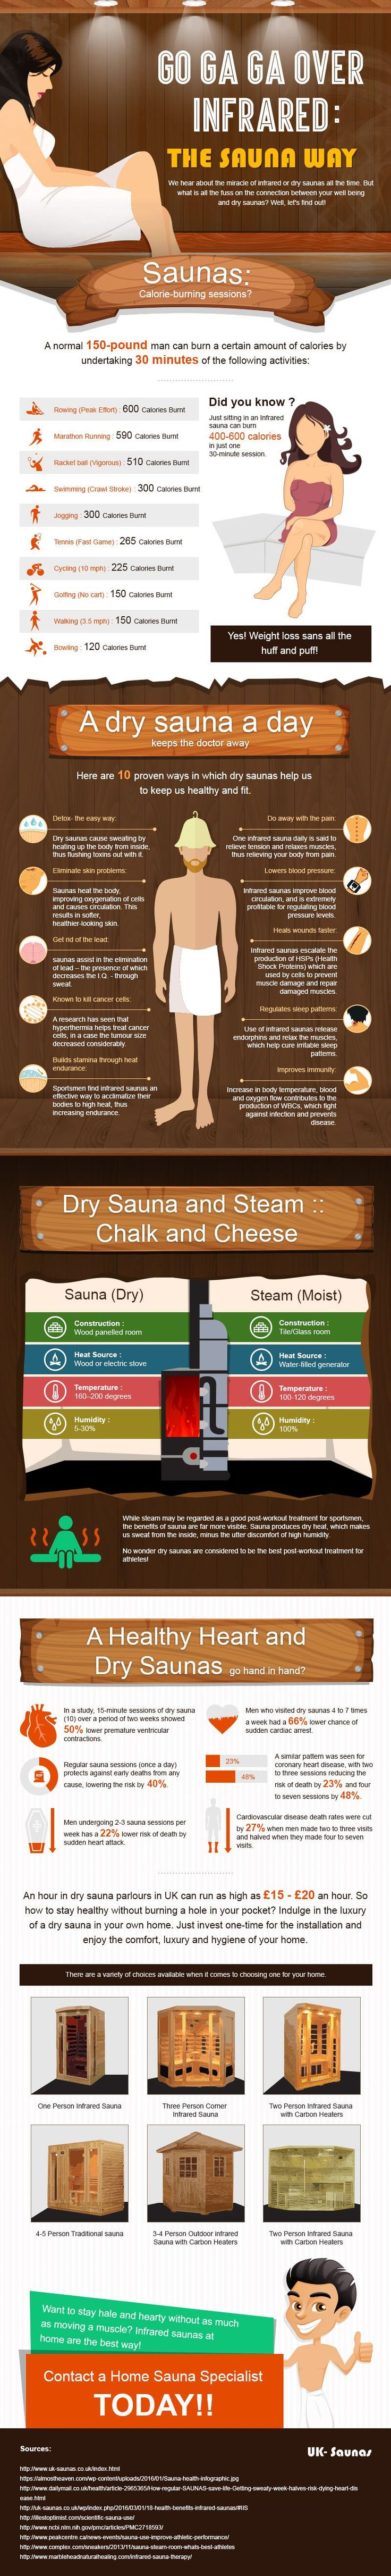 Did you know you can burn more calories by literally sitting in a #sauna than by playing tennis? Check out this infographic for even more crazy facts.  #health #fitness #yoga